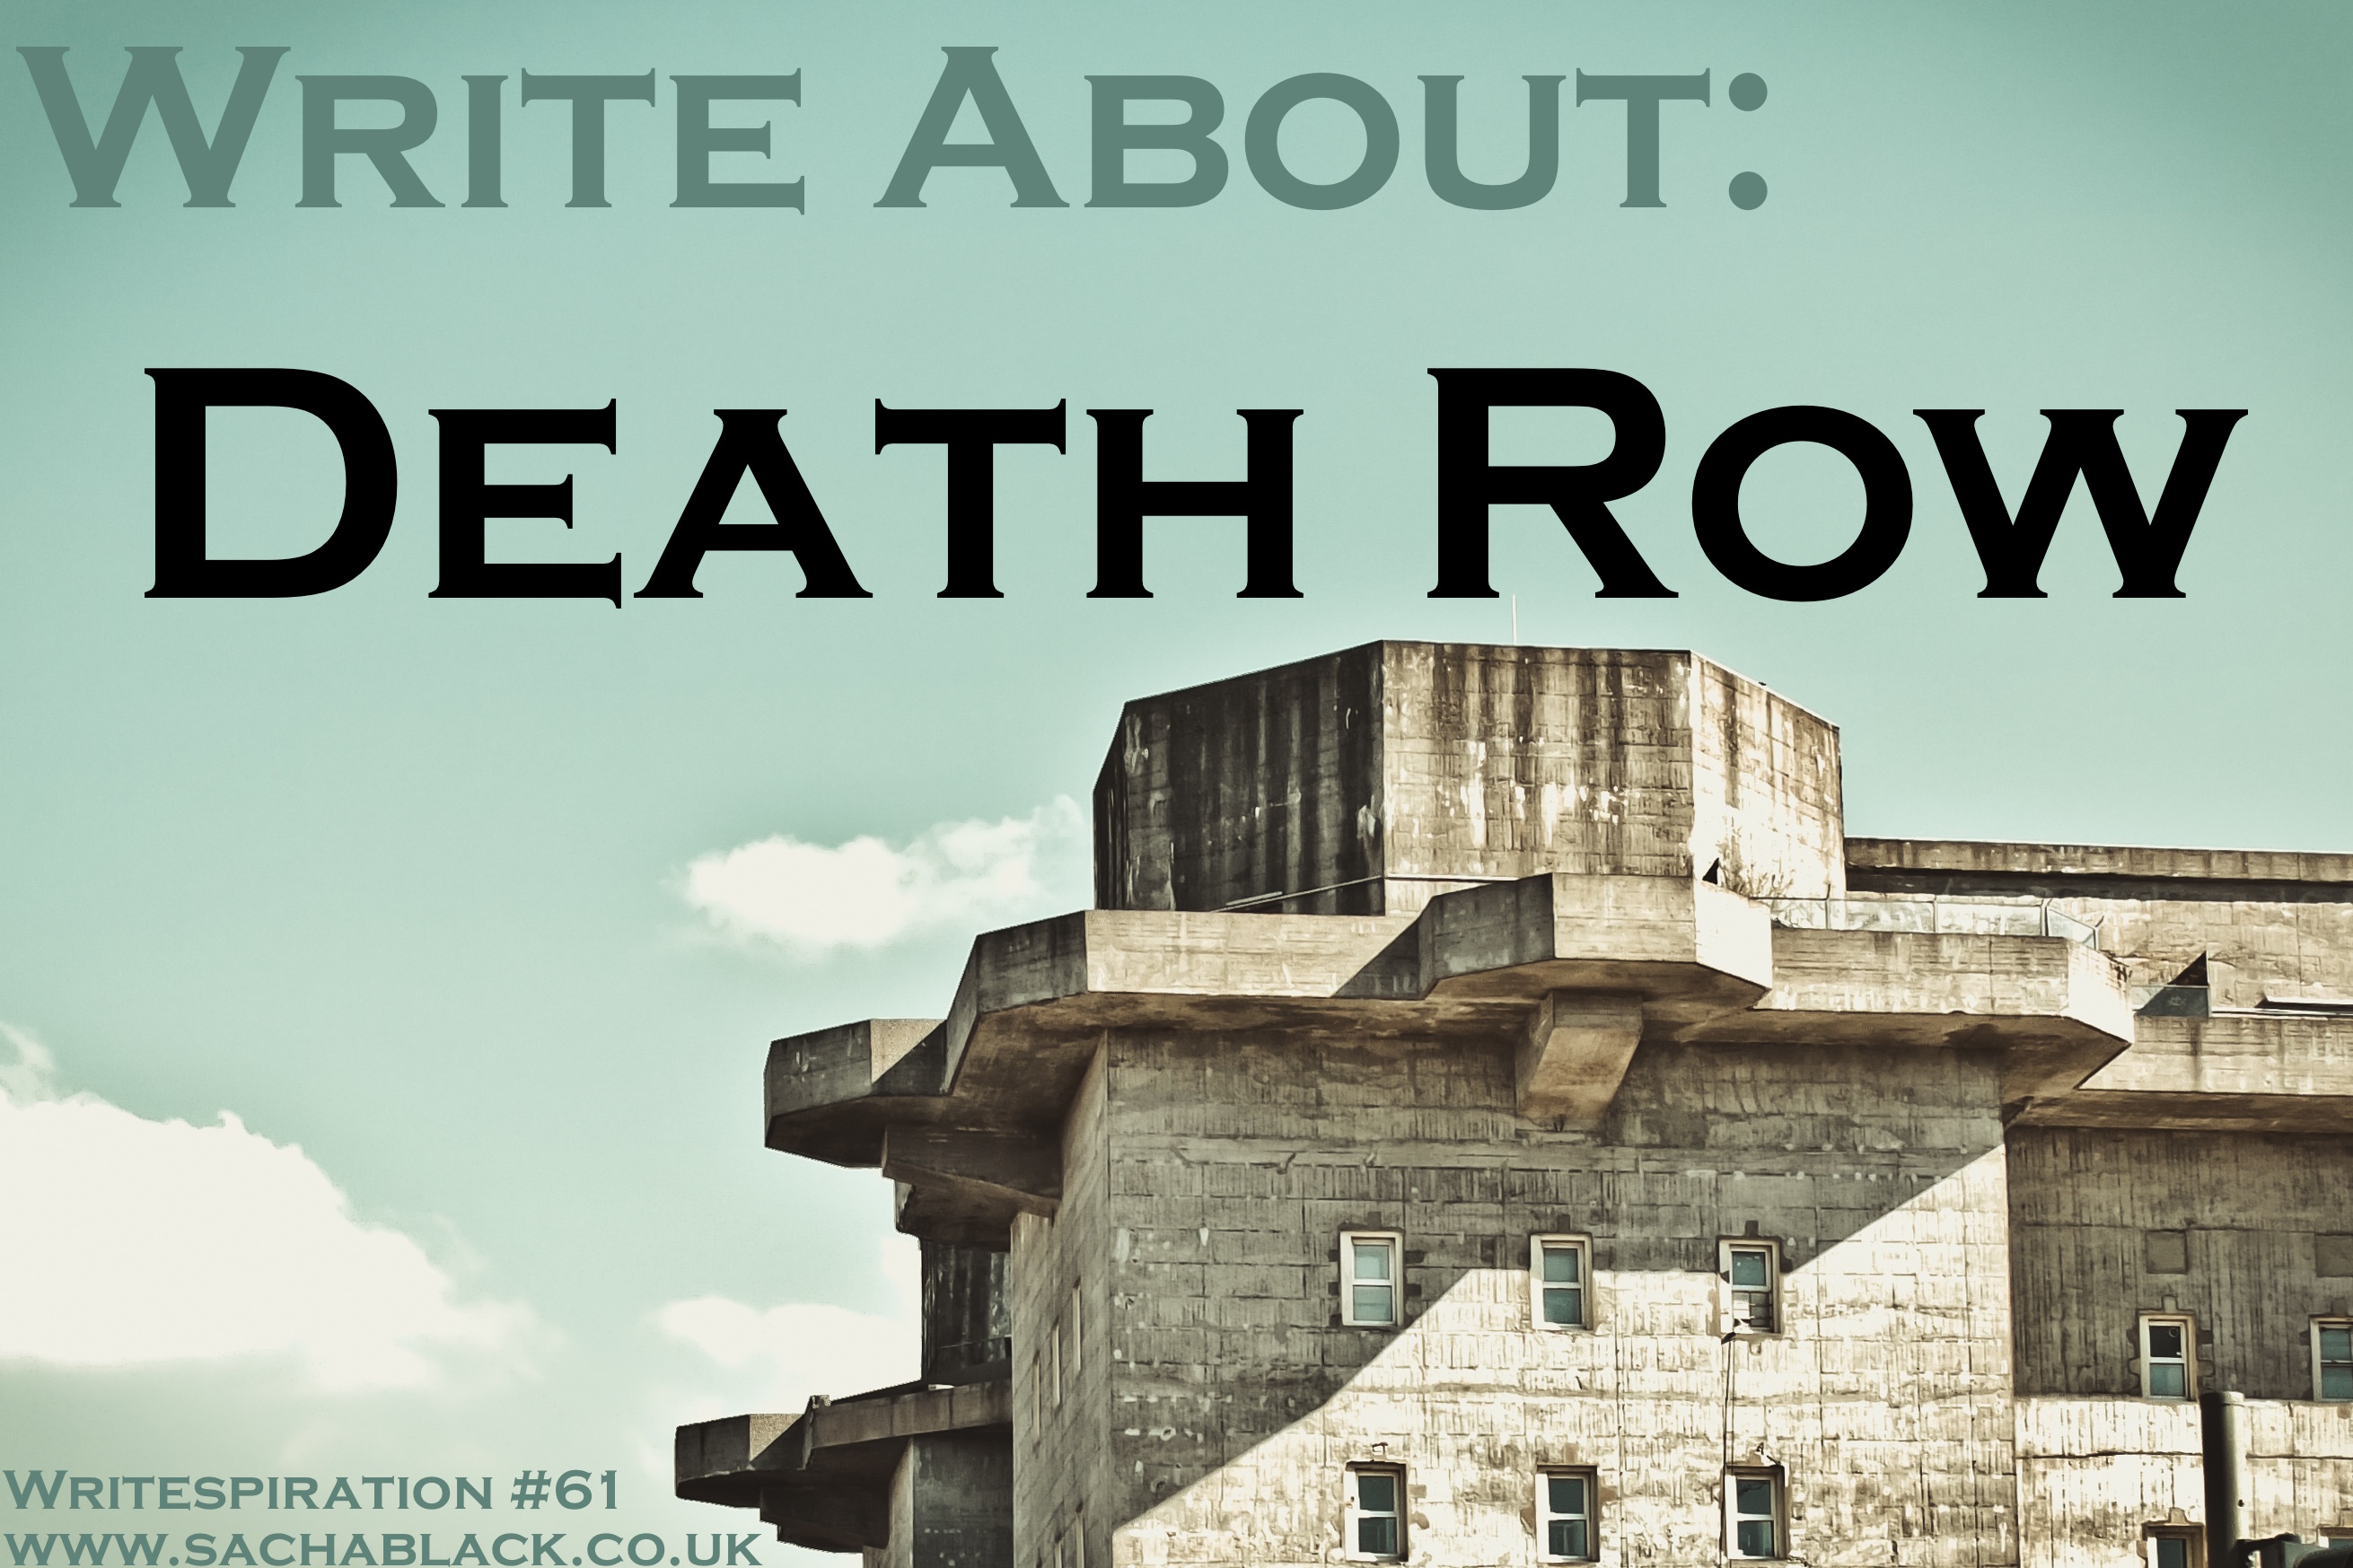 Write about Death Row